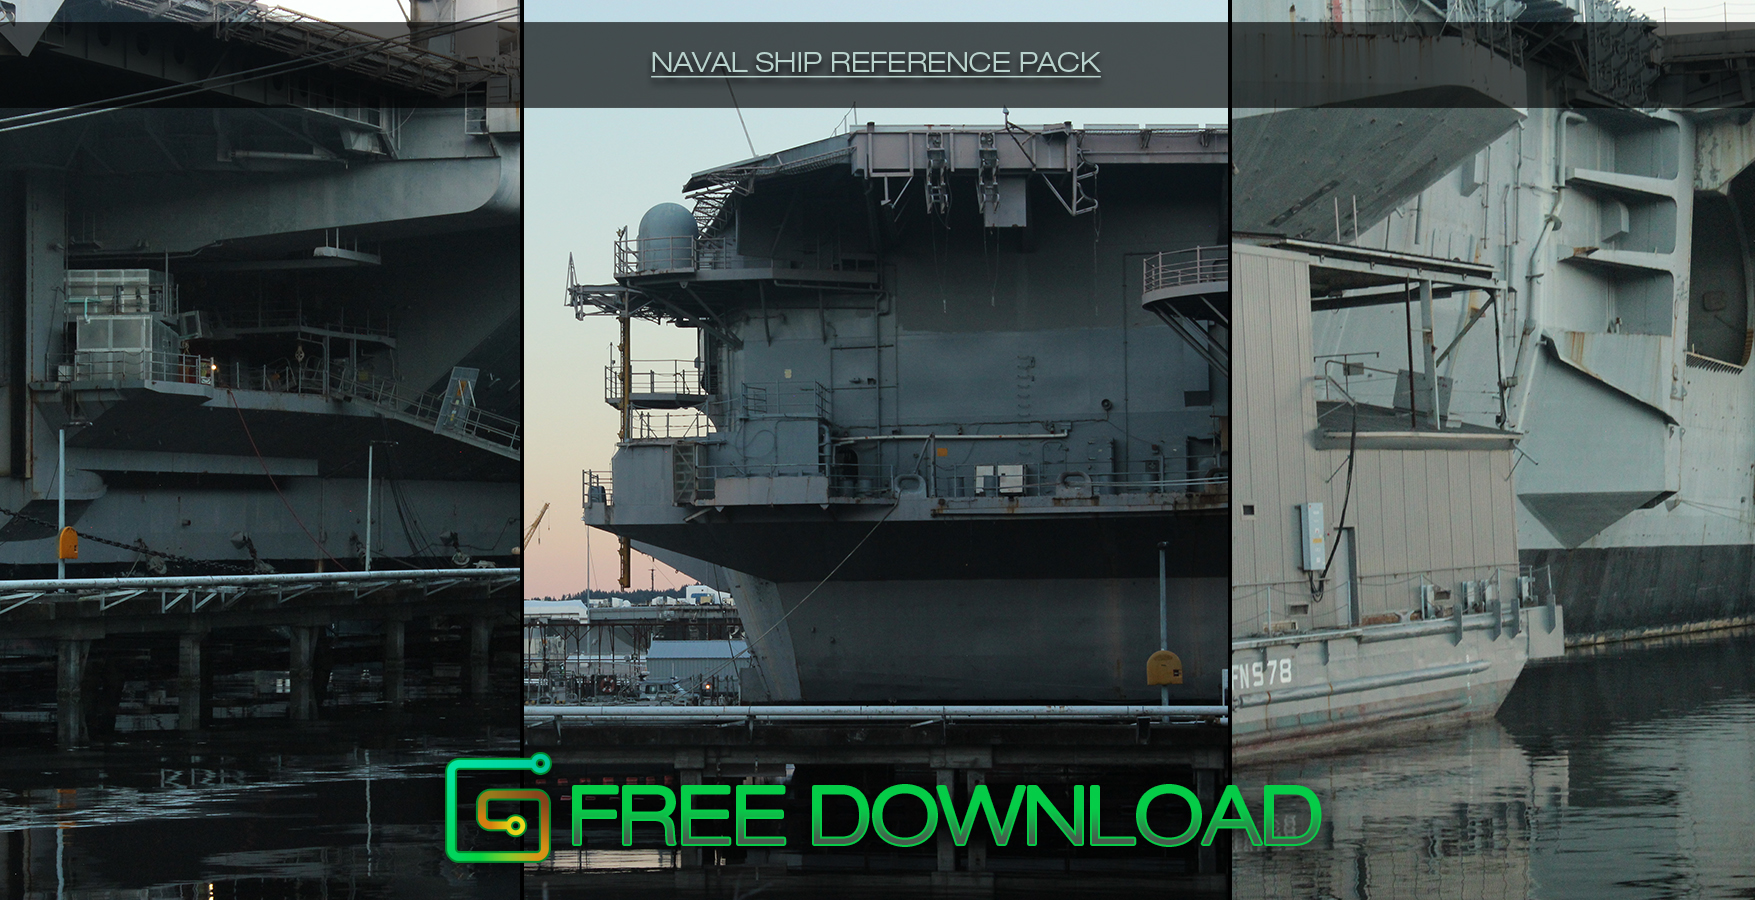 Naval Ship Reference Pack by DylanPierpont